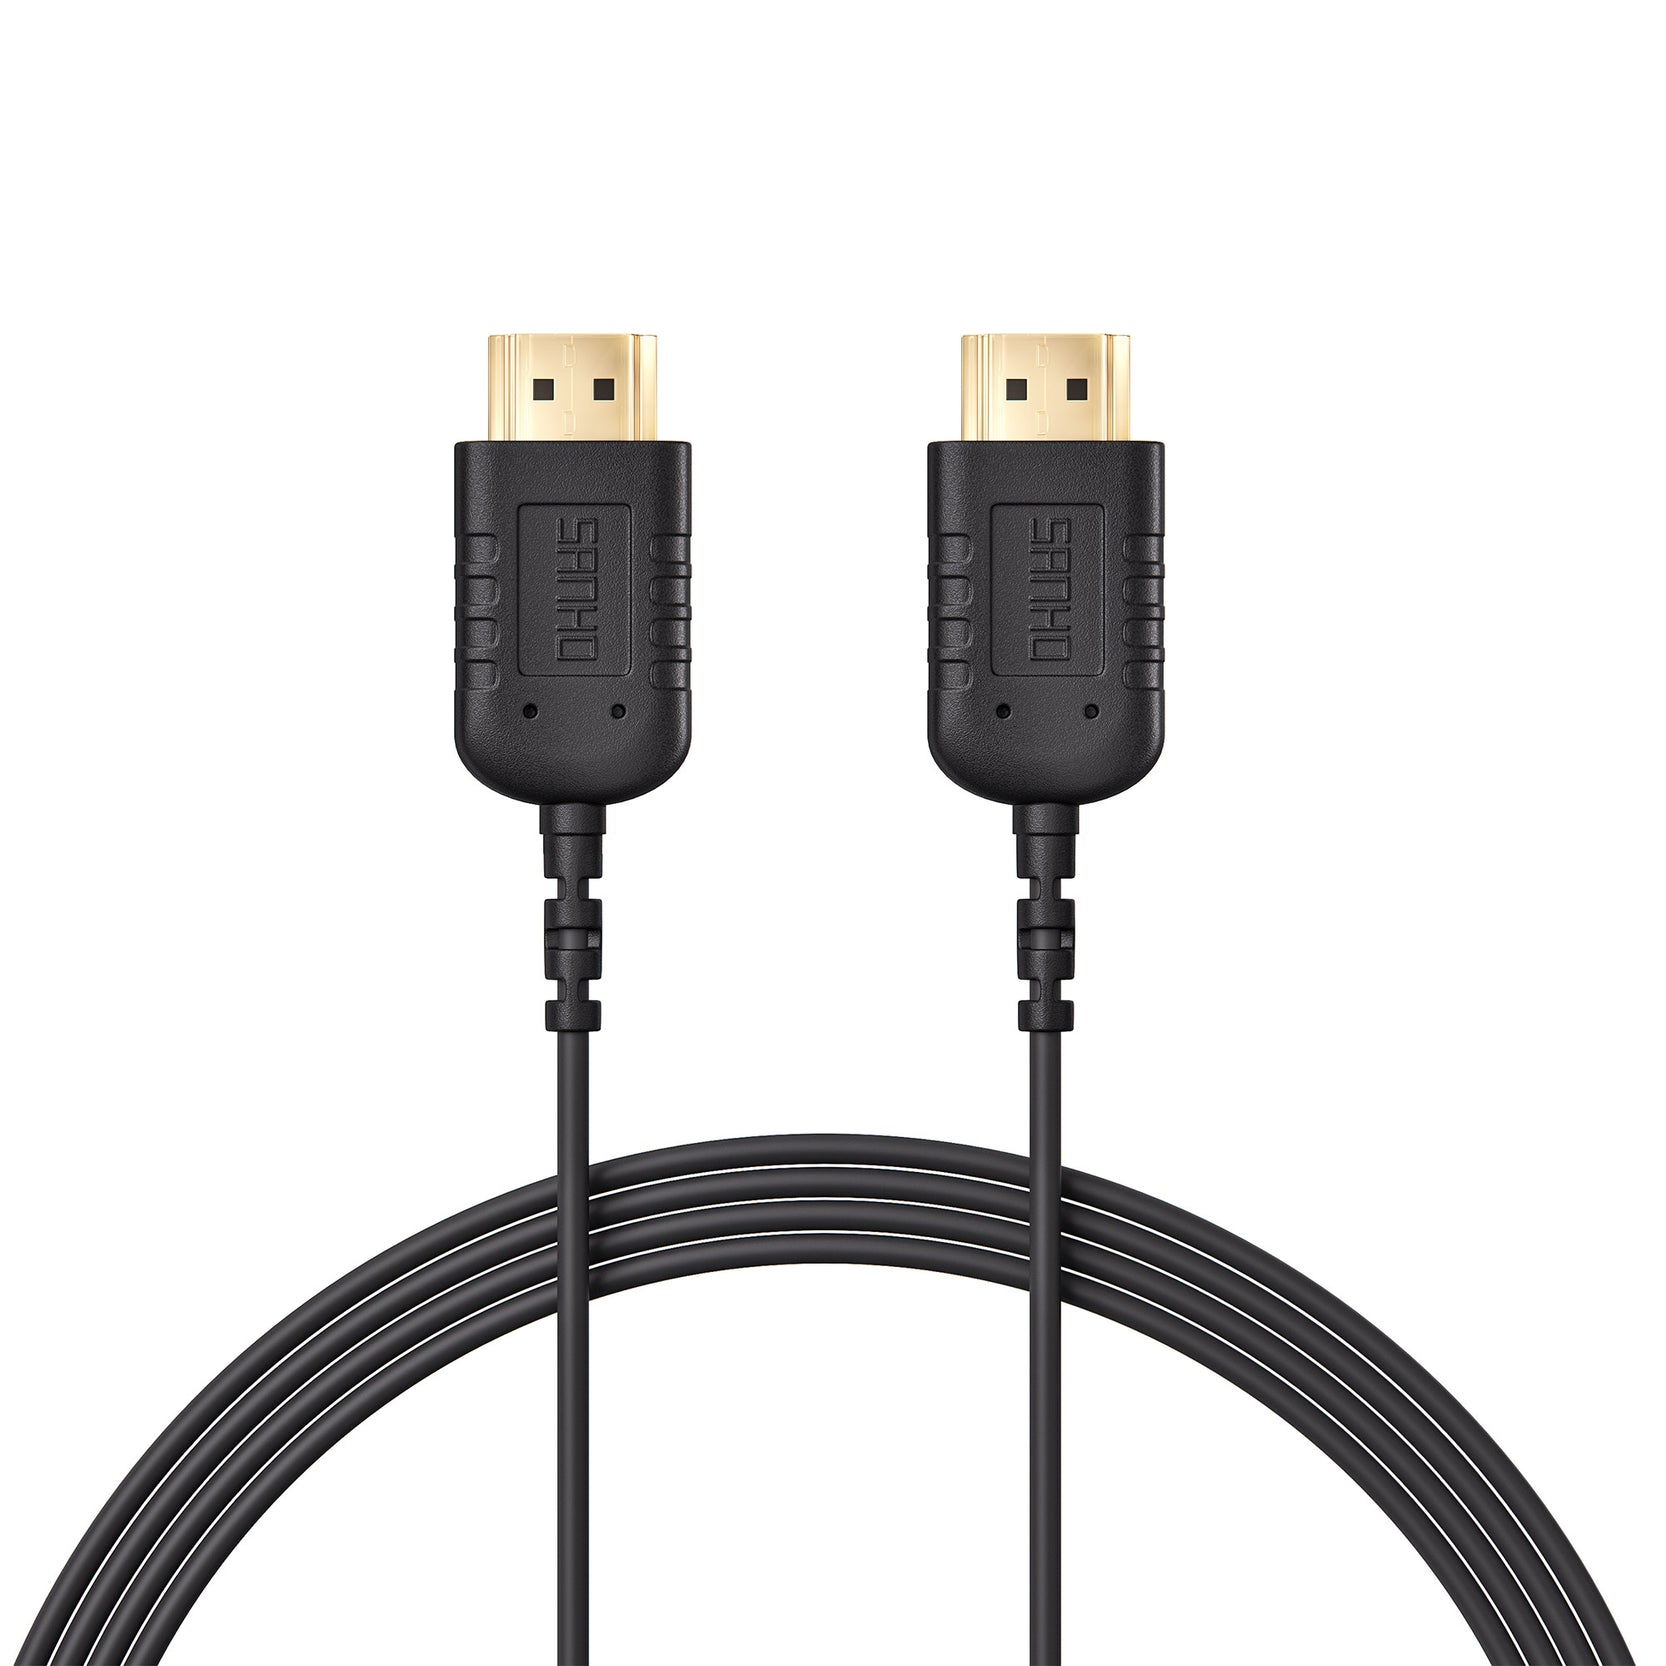 HyperThin HDMI to HDMI (2.5m) — World's thinnest & most flexible 4K HDMI cable.